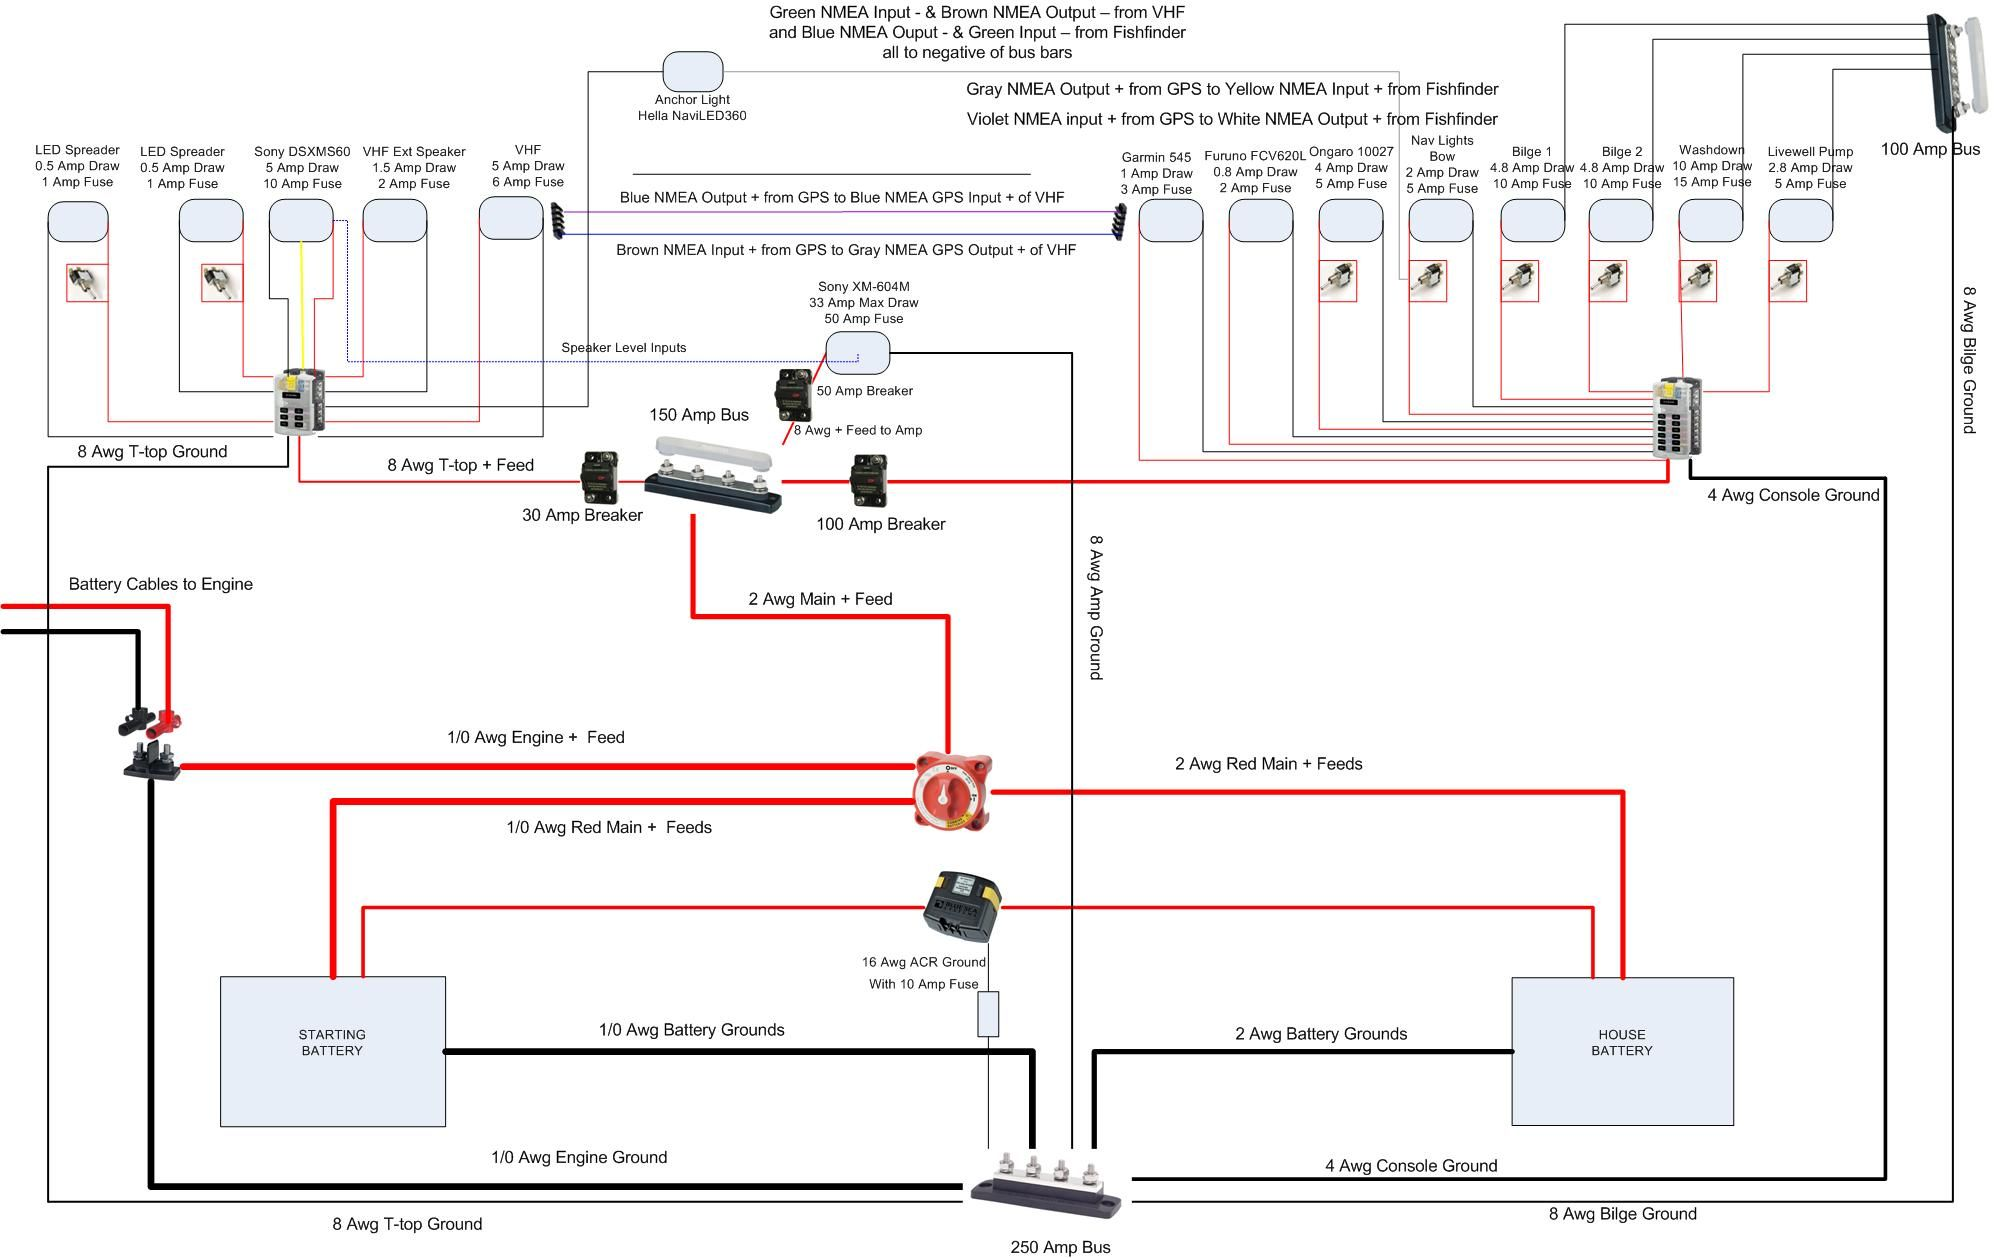 Simple to read wiring diagram for a boat | Boat in 2019 ...